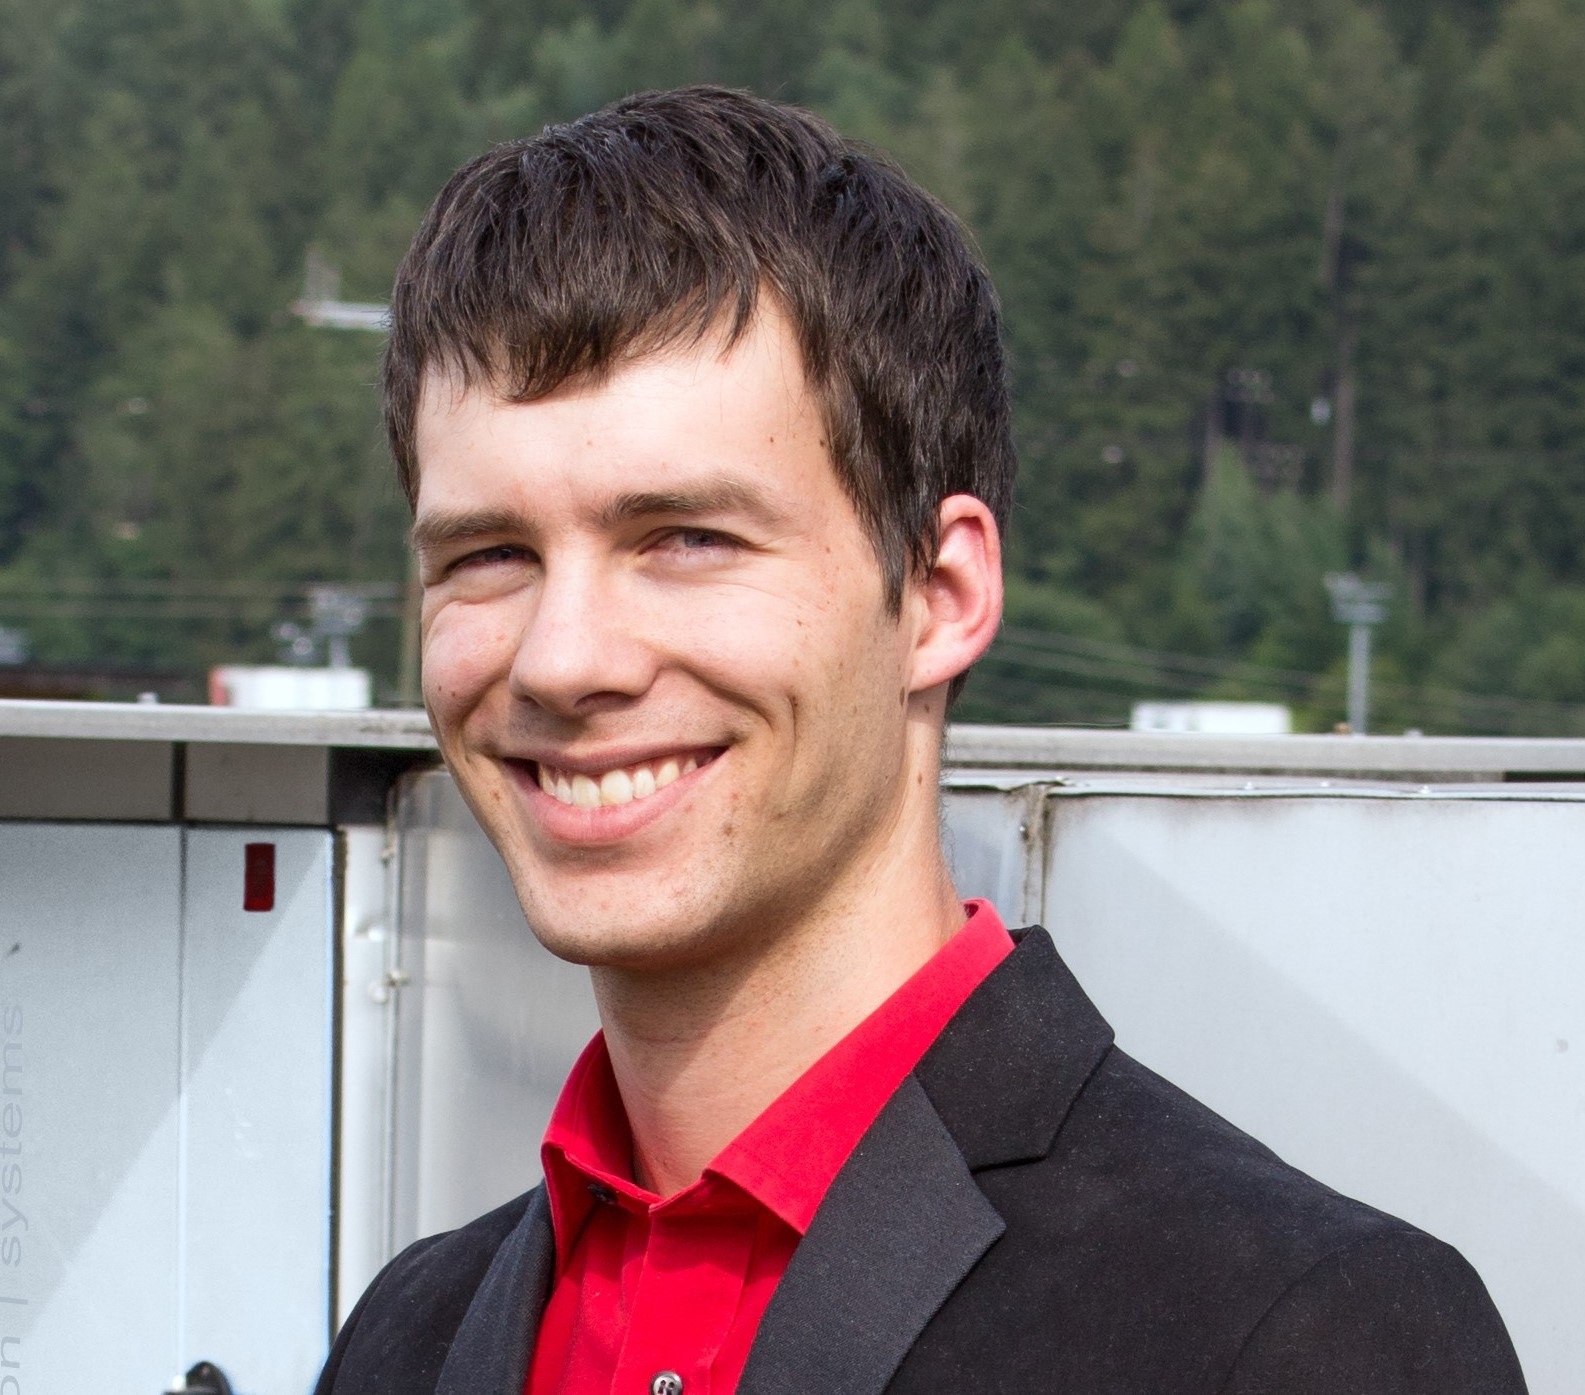 Thilo Mazzarol, MSc; graduate of Environmental, Process & Energy Engineering